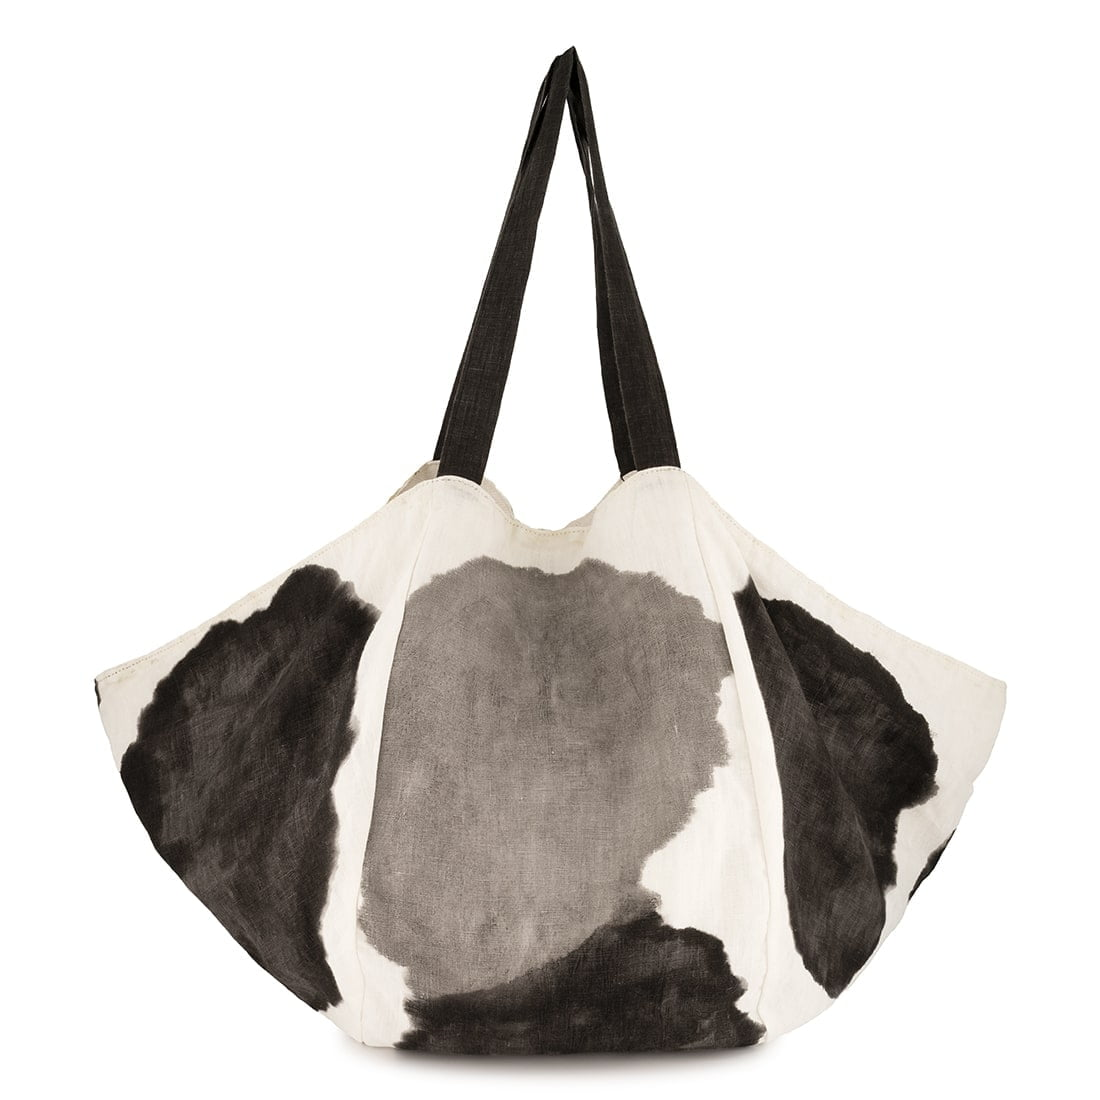 Atlas hand-painted linen tote with cotton interior 1